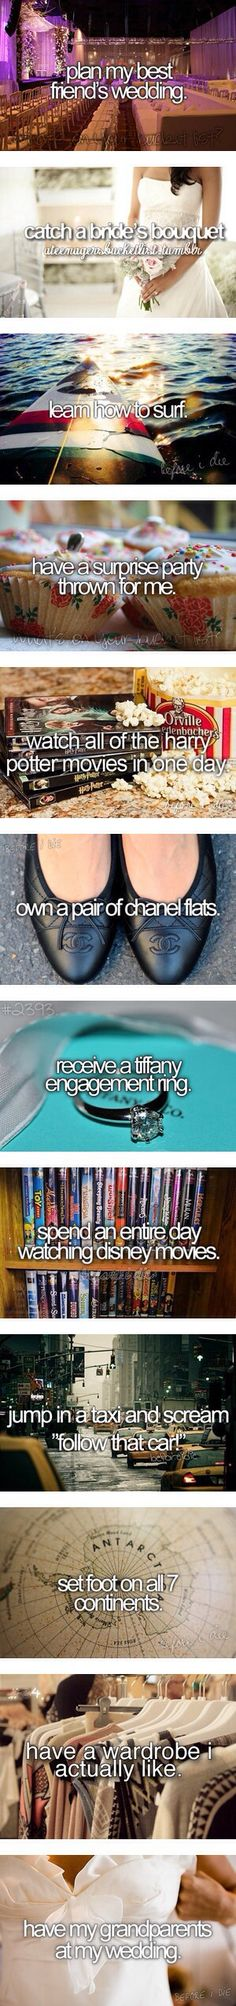 Wanna do all except watch Harry potter. Don't like those and to b honest I don't care what kind of ring I get as long as its from the heart.